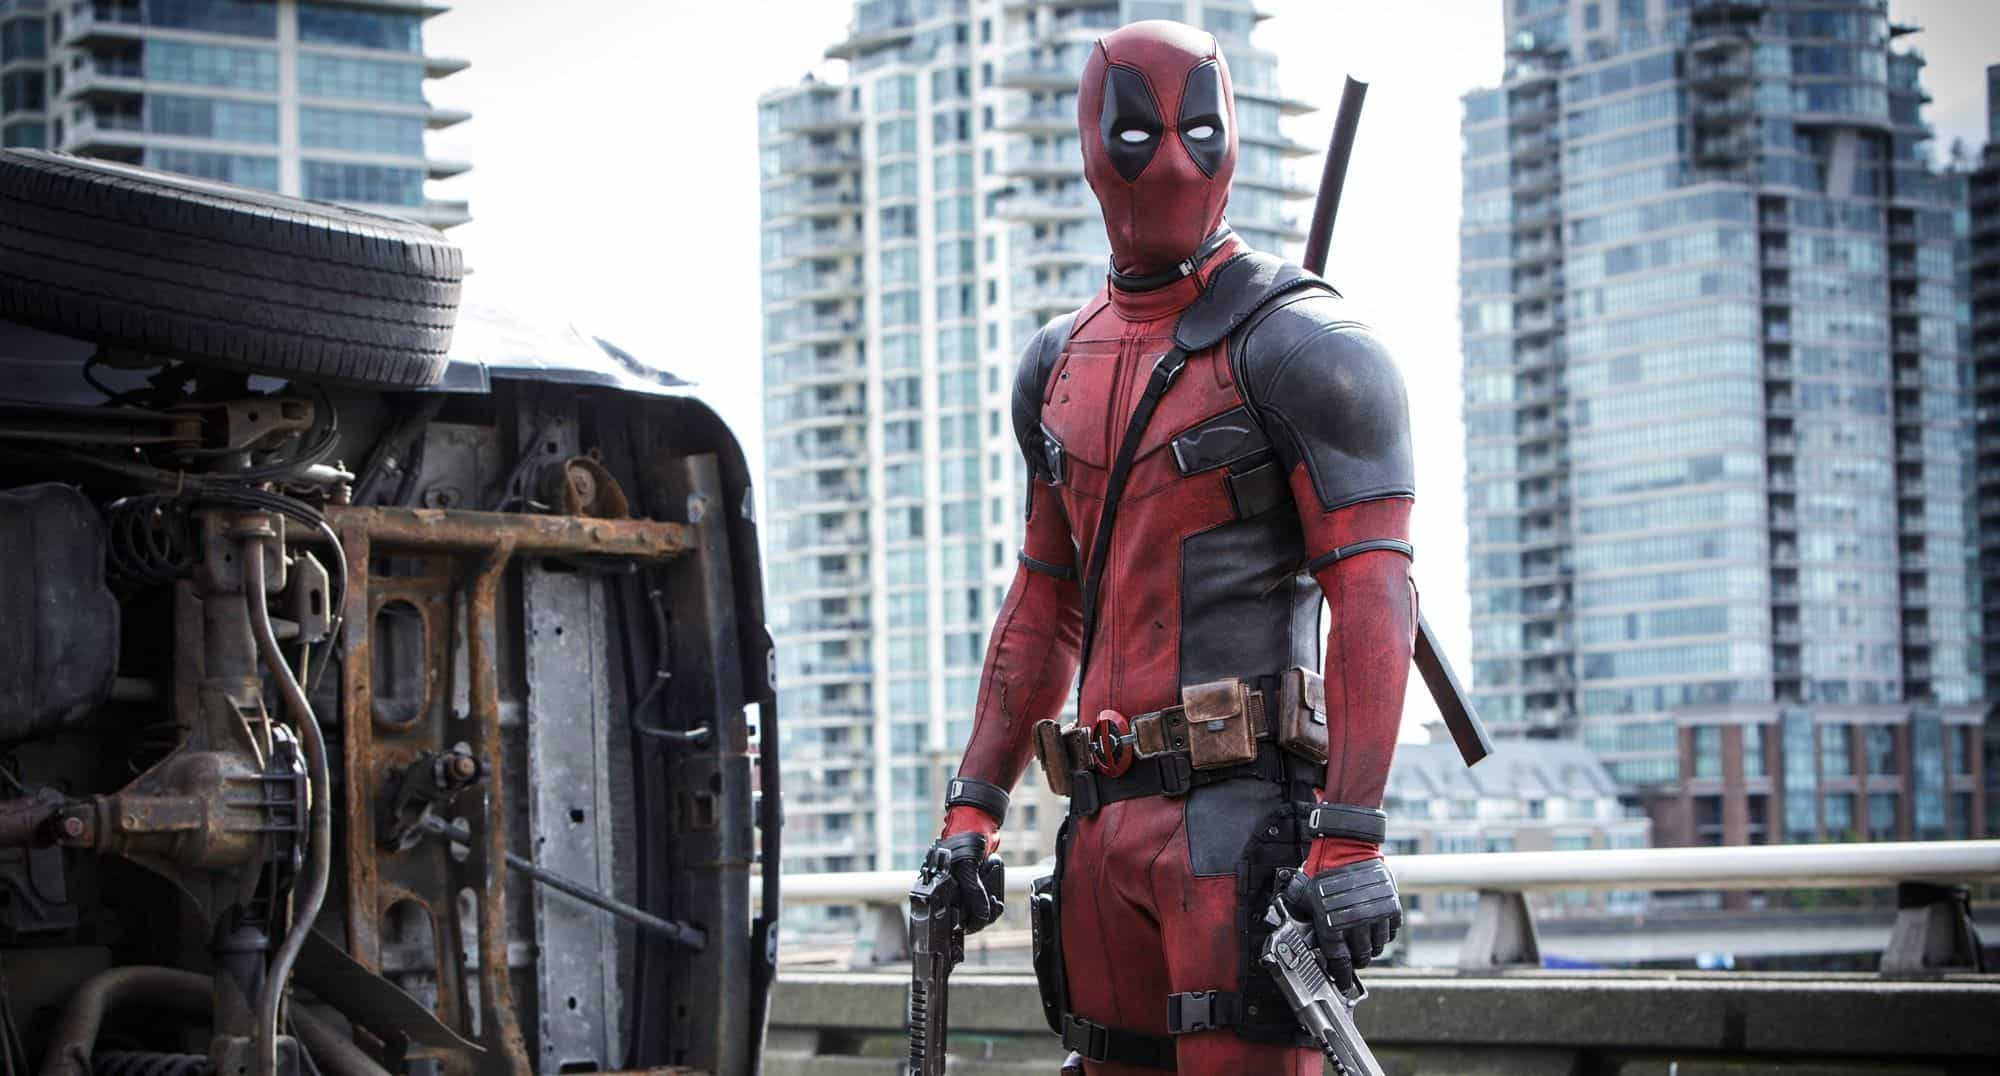 Review zum Film Deadpool